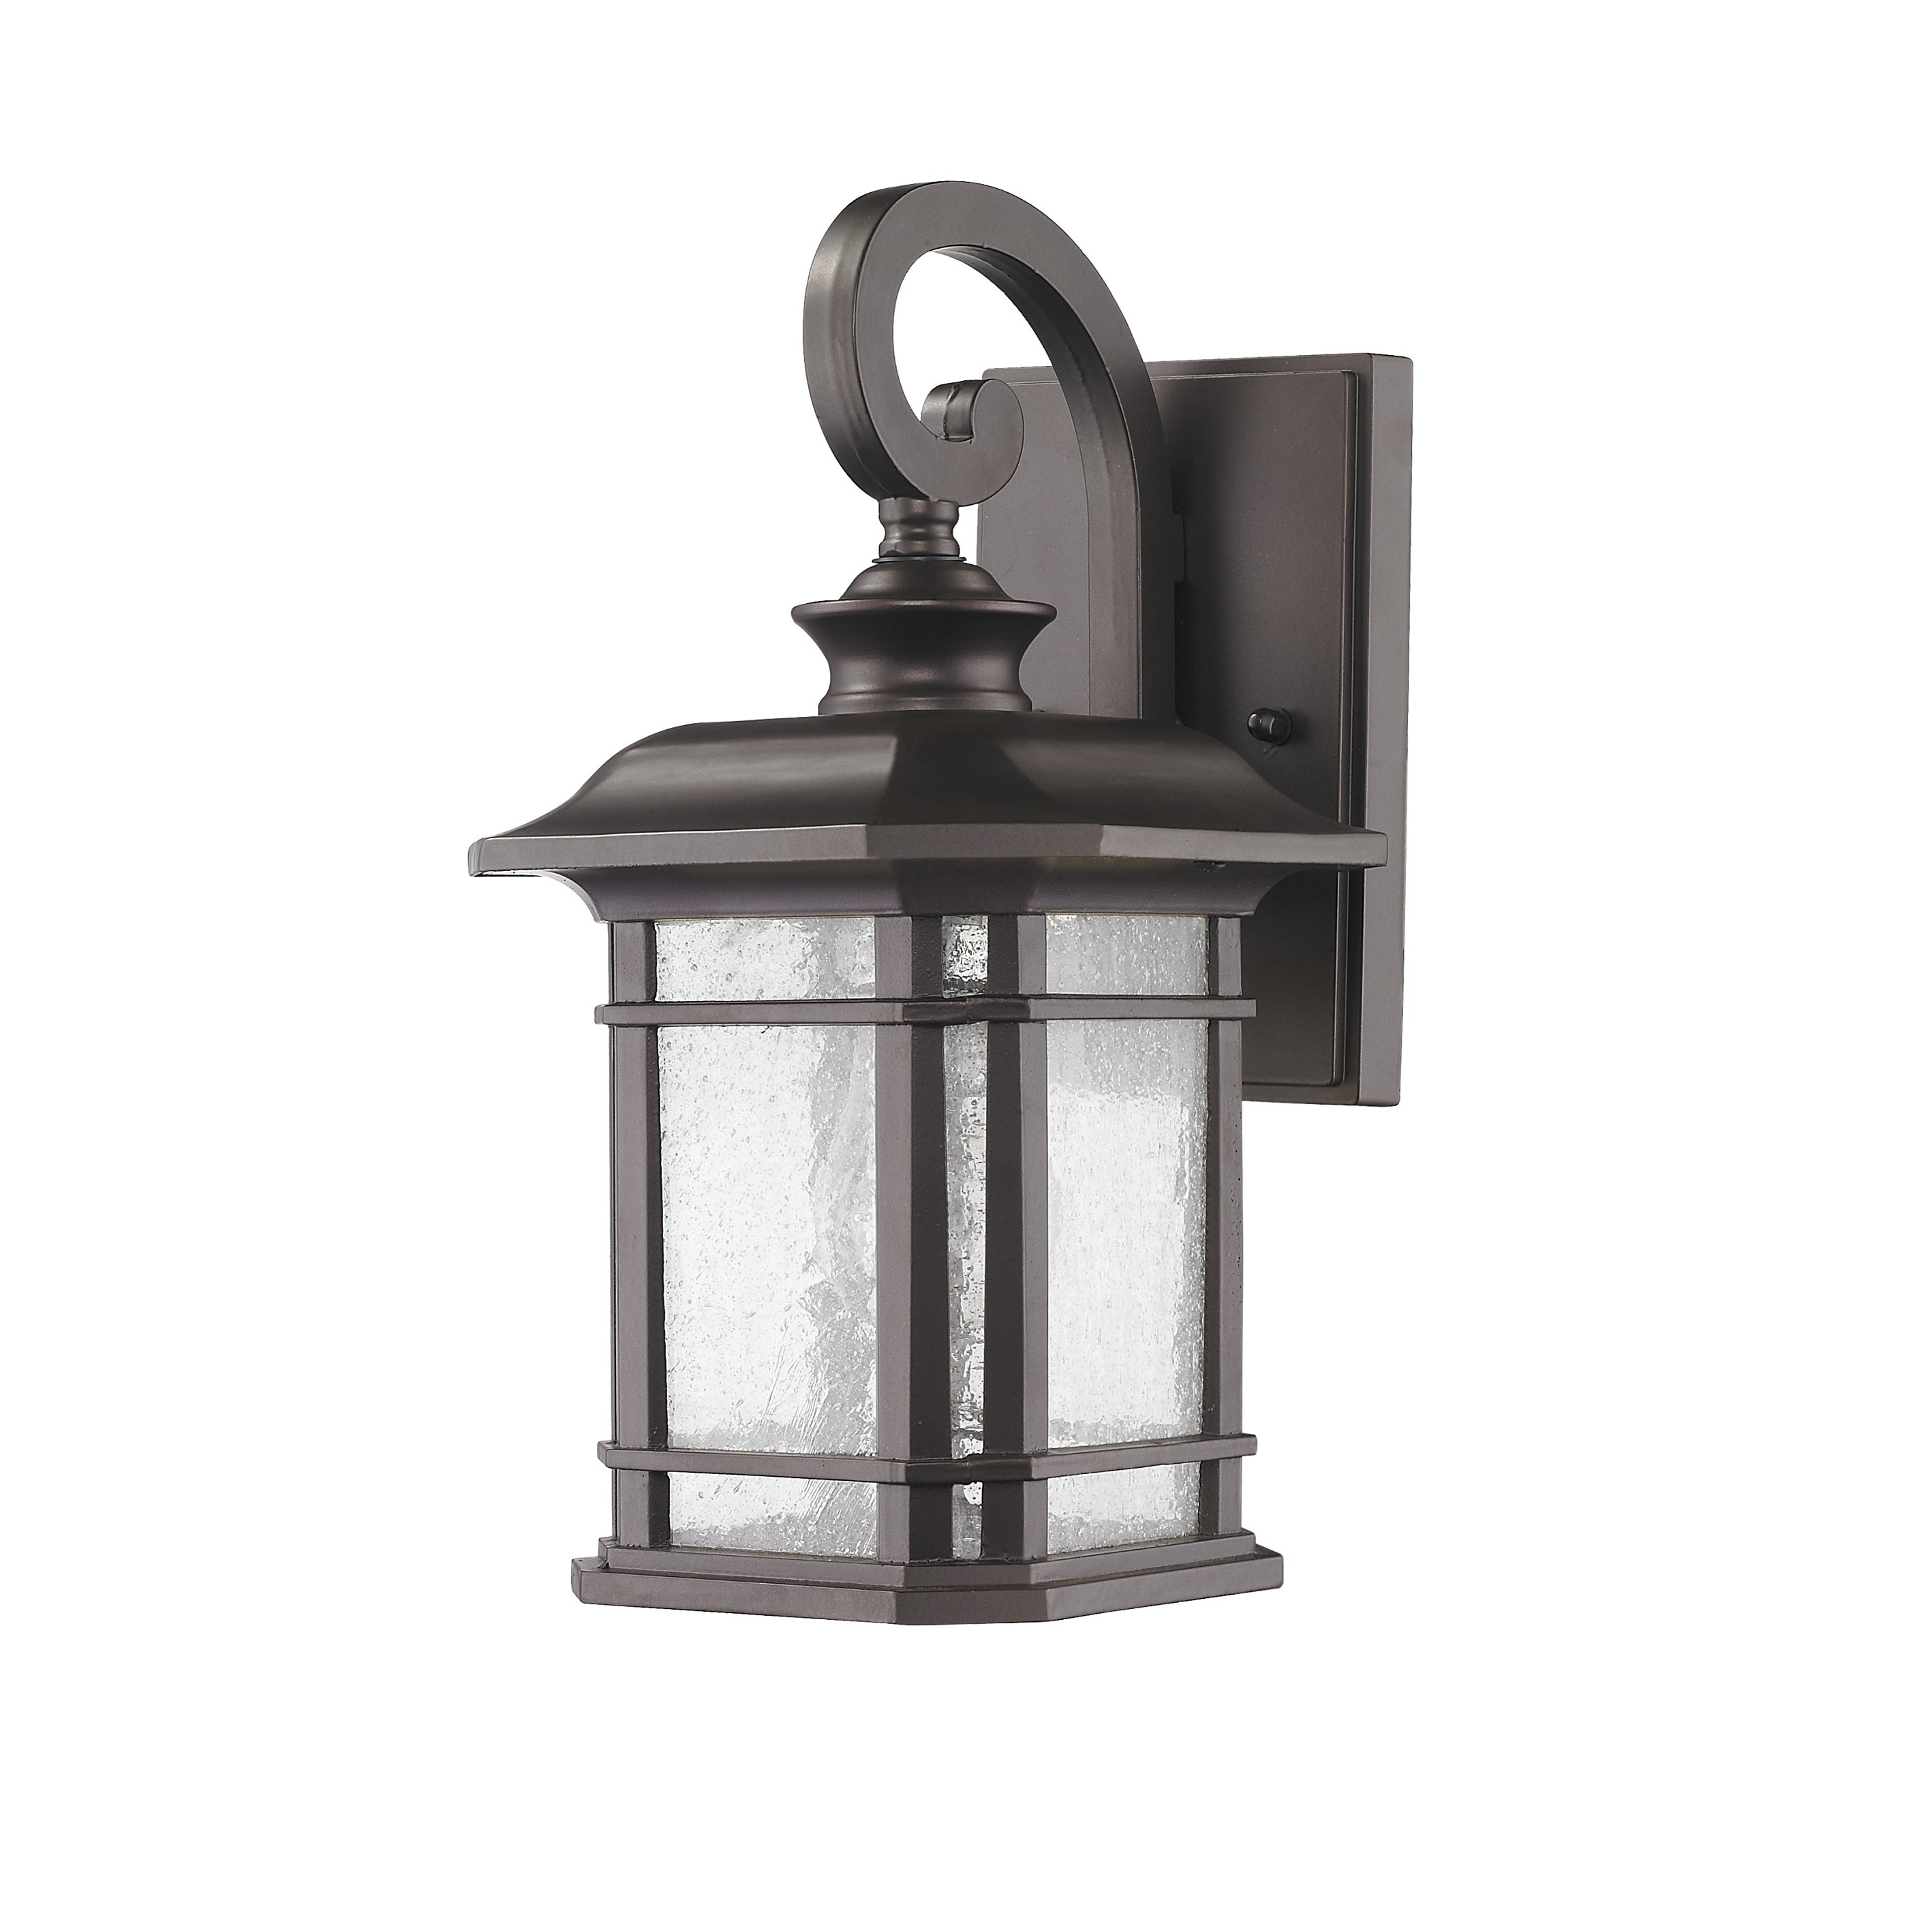 Fashionable Outdoor Lighting Fixtures At Wayfair In Outdoor Wall Lighting Wayfair Transitional 1 Light Lantern ~ Clipgoo (View 3 of 20)